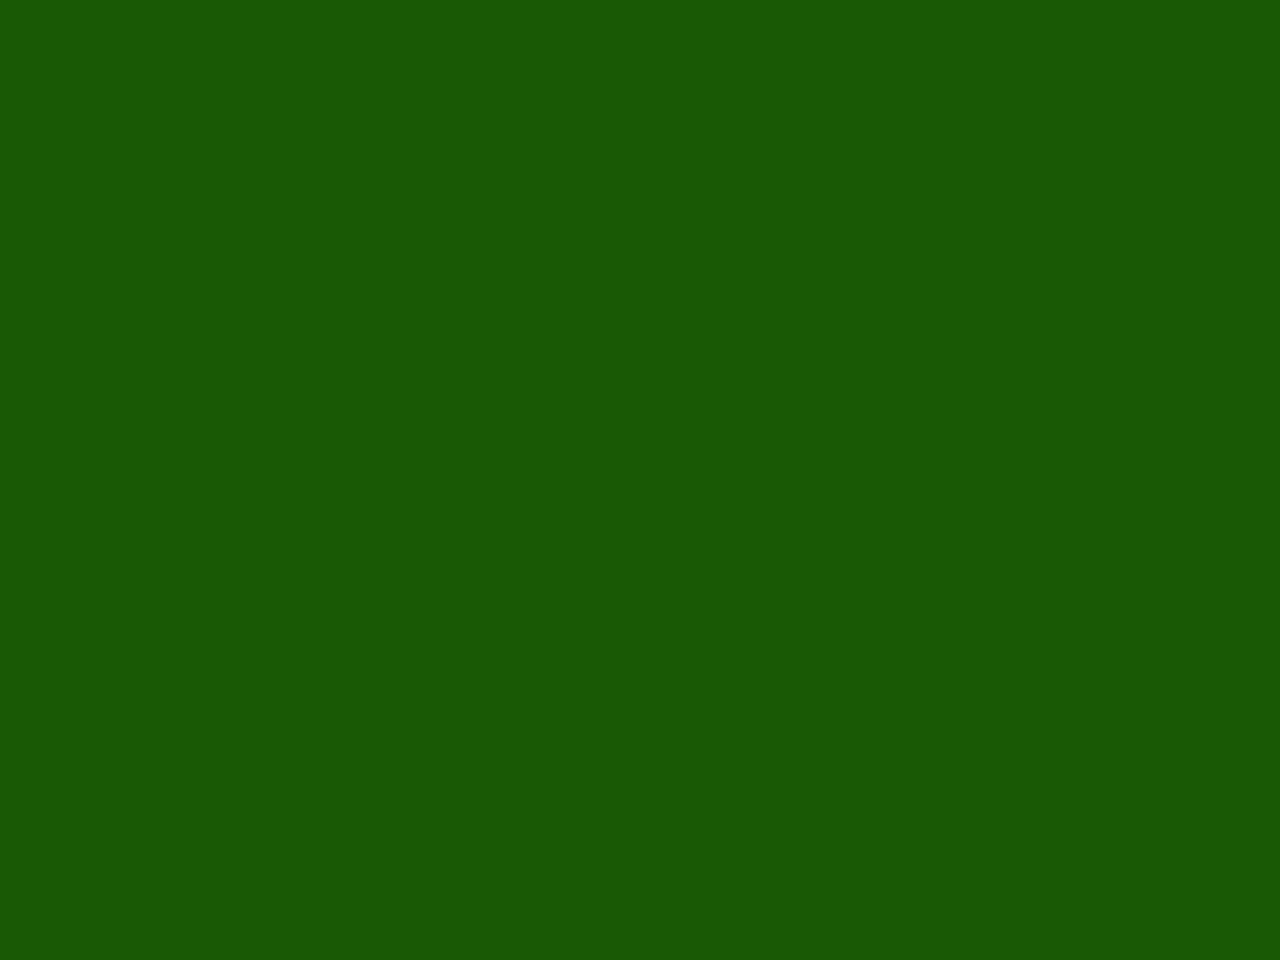 1280x960 Lincoln Green Solid Color Background